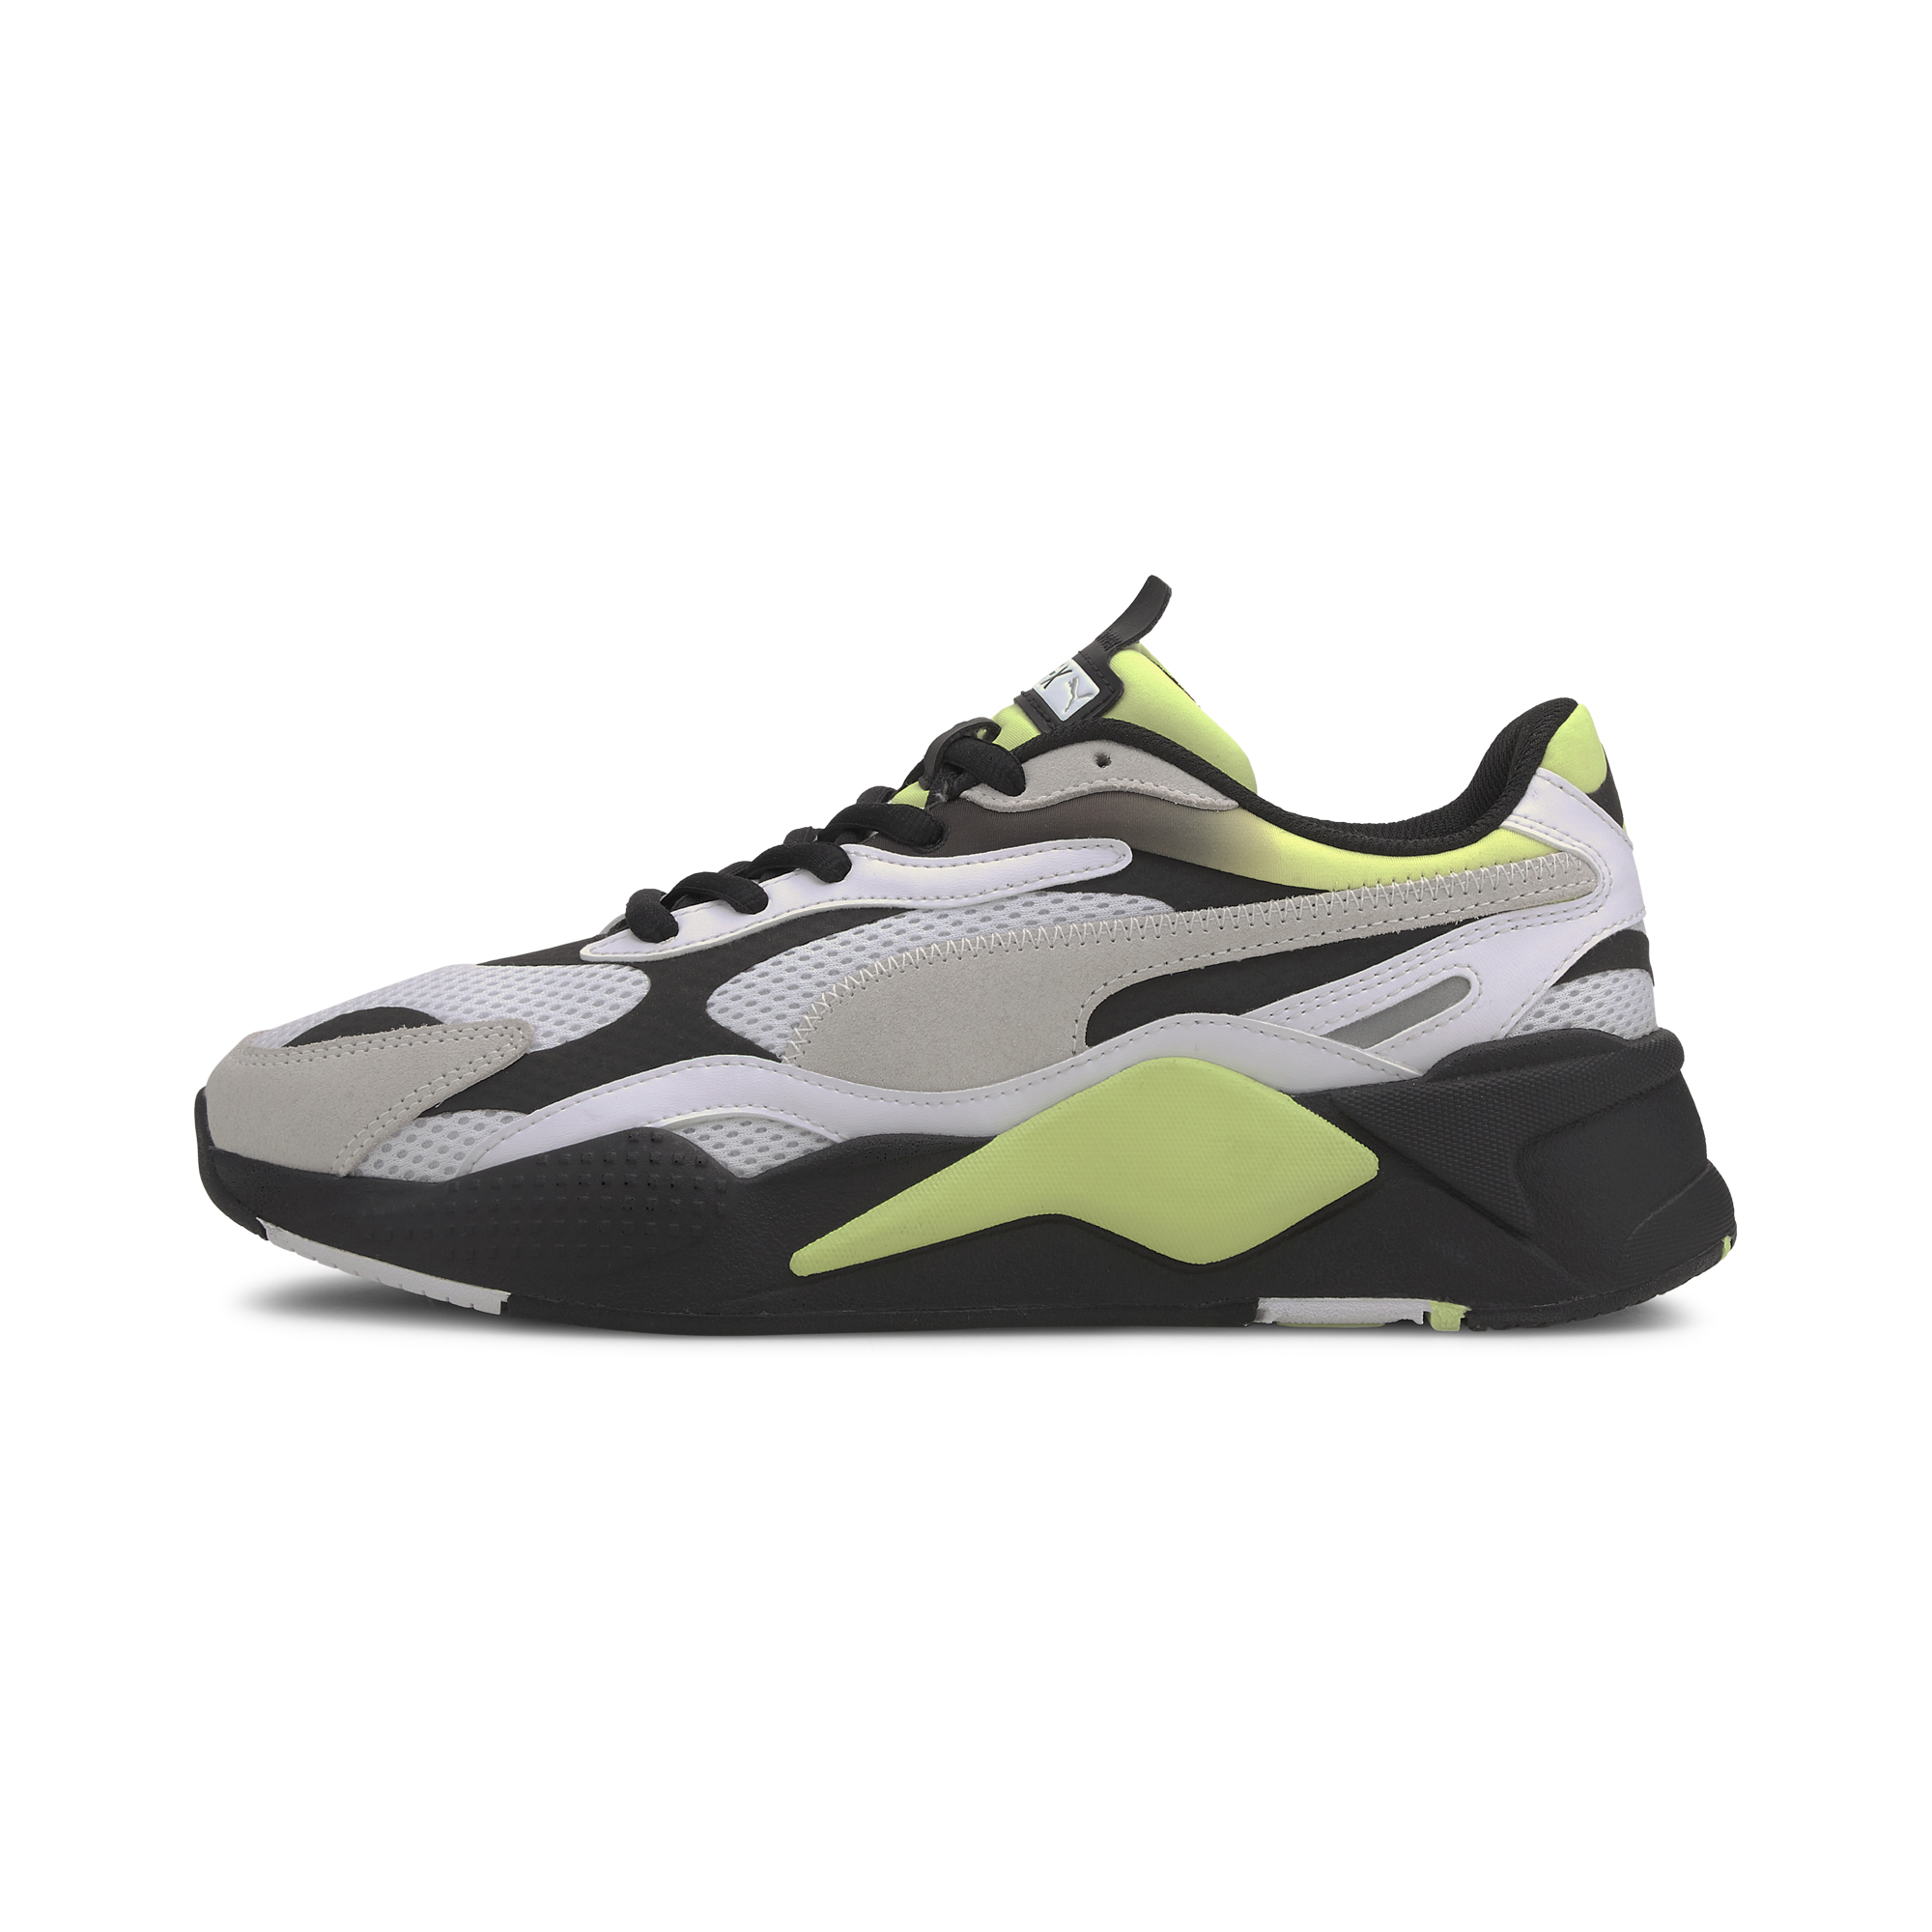 Puma RS-X³ Neo Fade Puma White-Fizzy Yellow-Puma Black 37337702